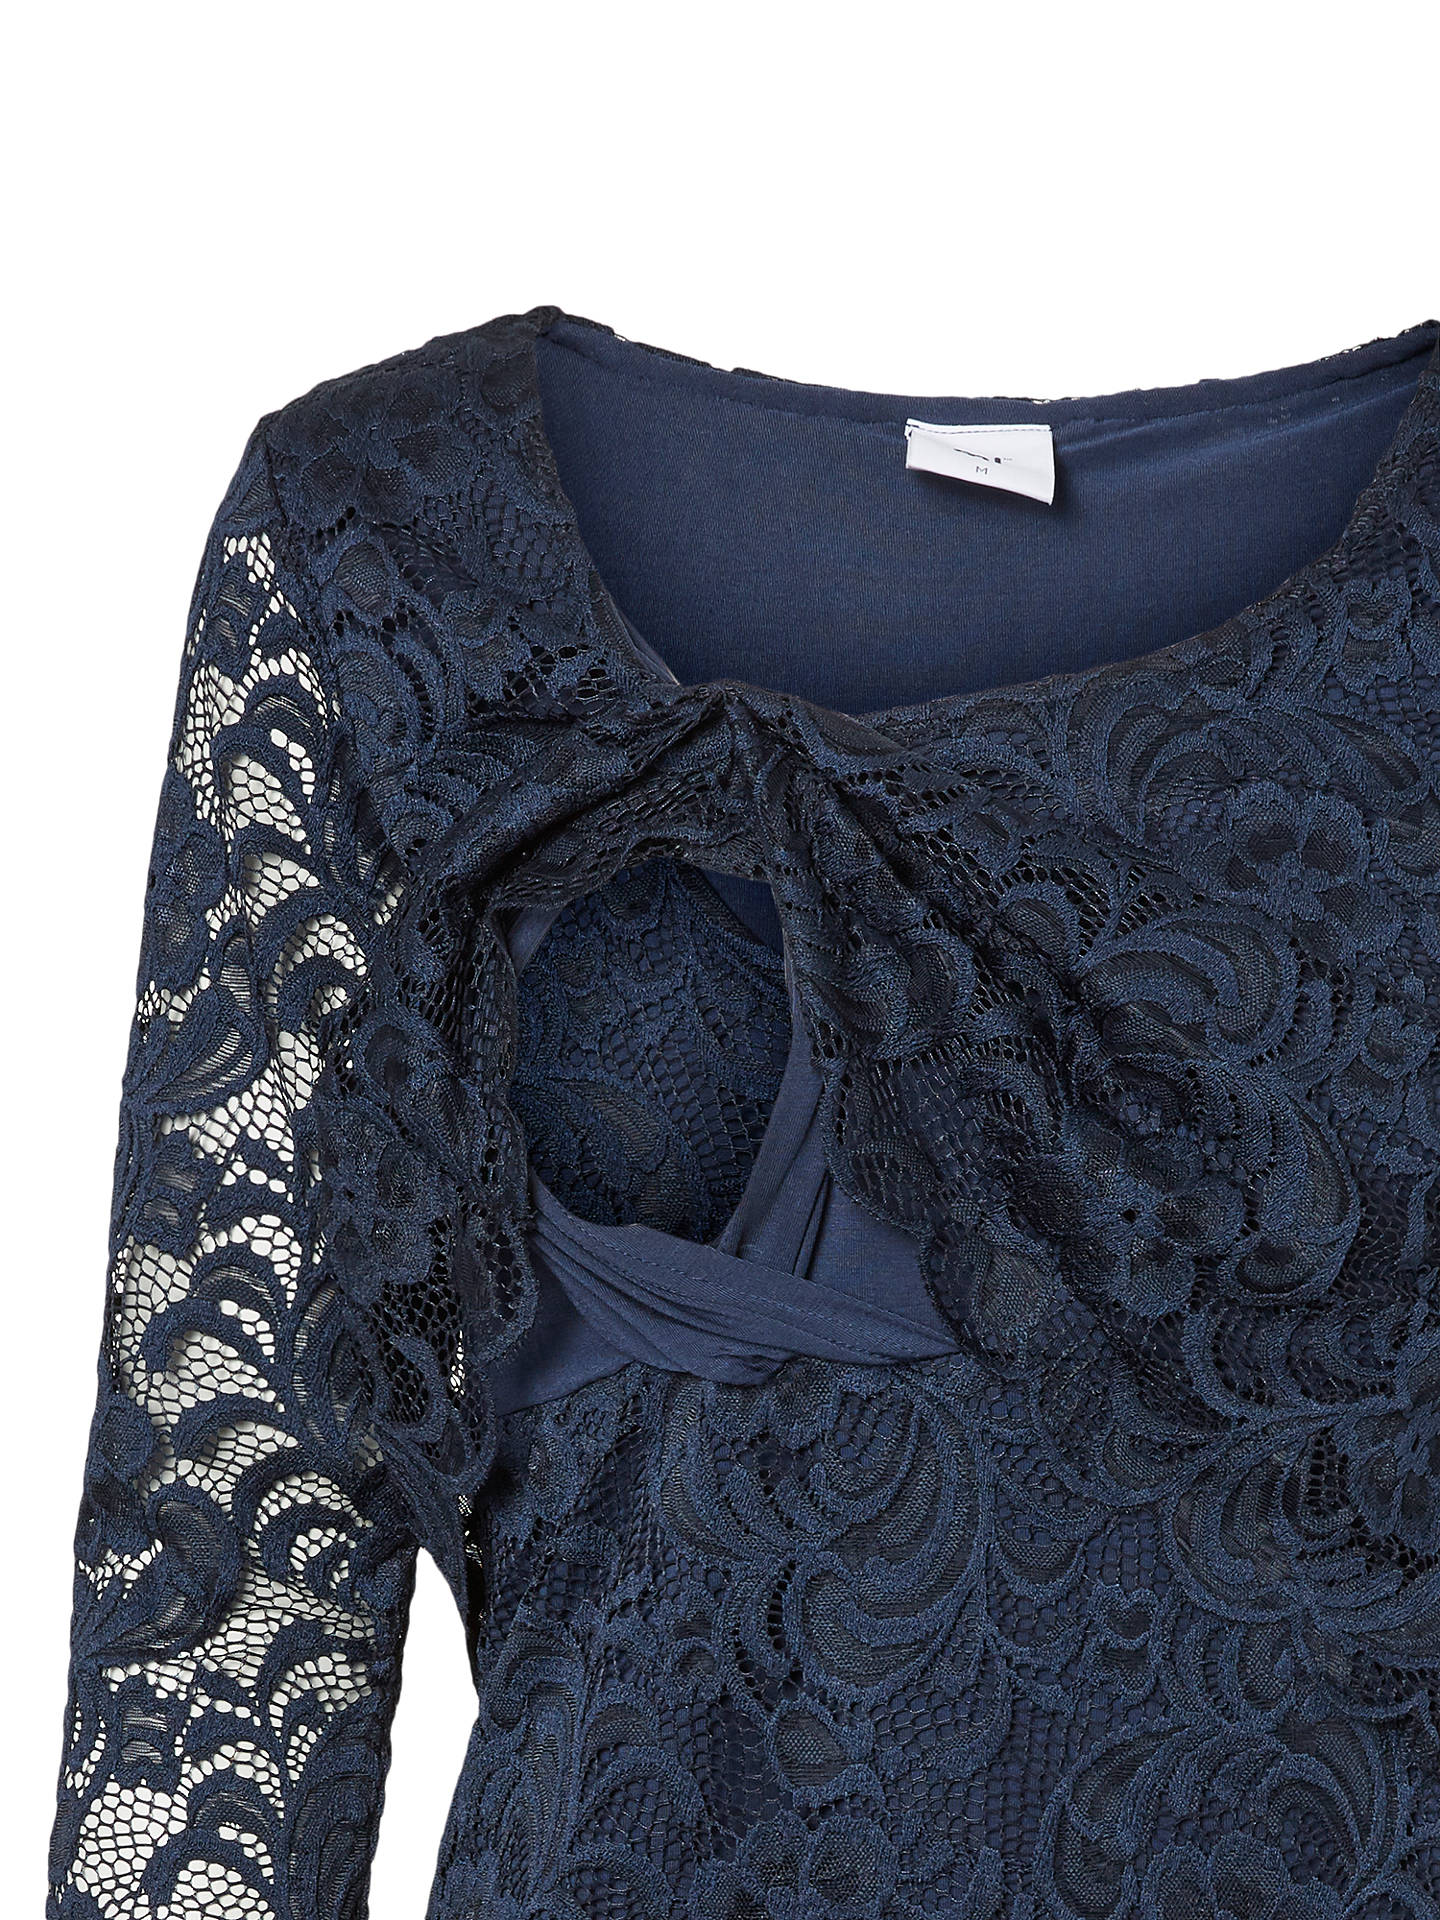 36a9ea4456b Buy Mamalicious Mivane June Lace Overlay Nursing Top, Navy, S Online at  johnlewis.